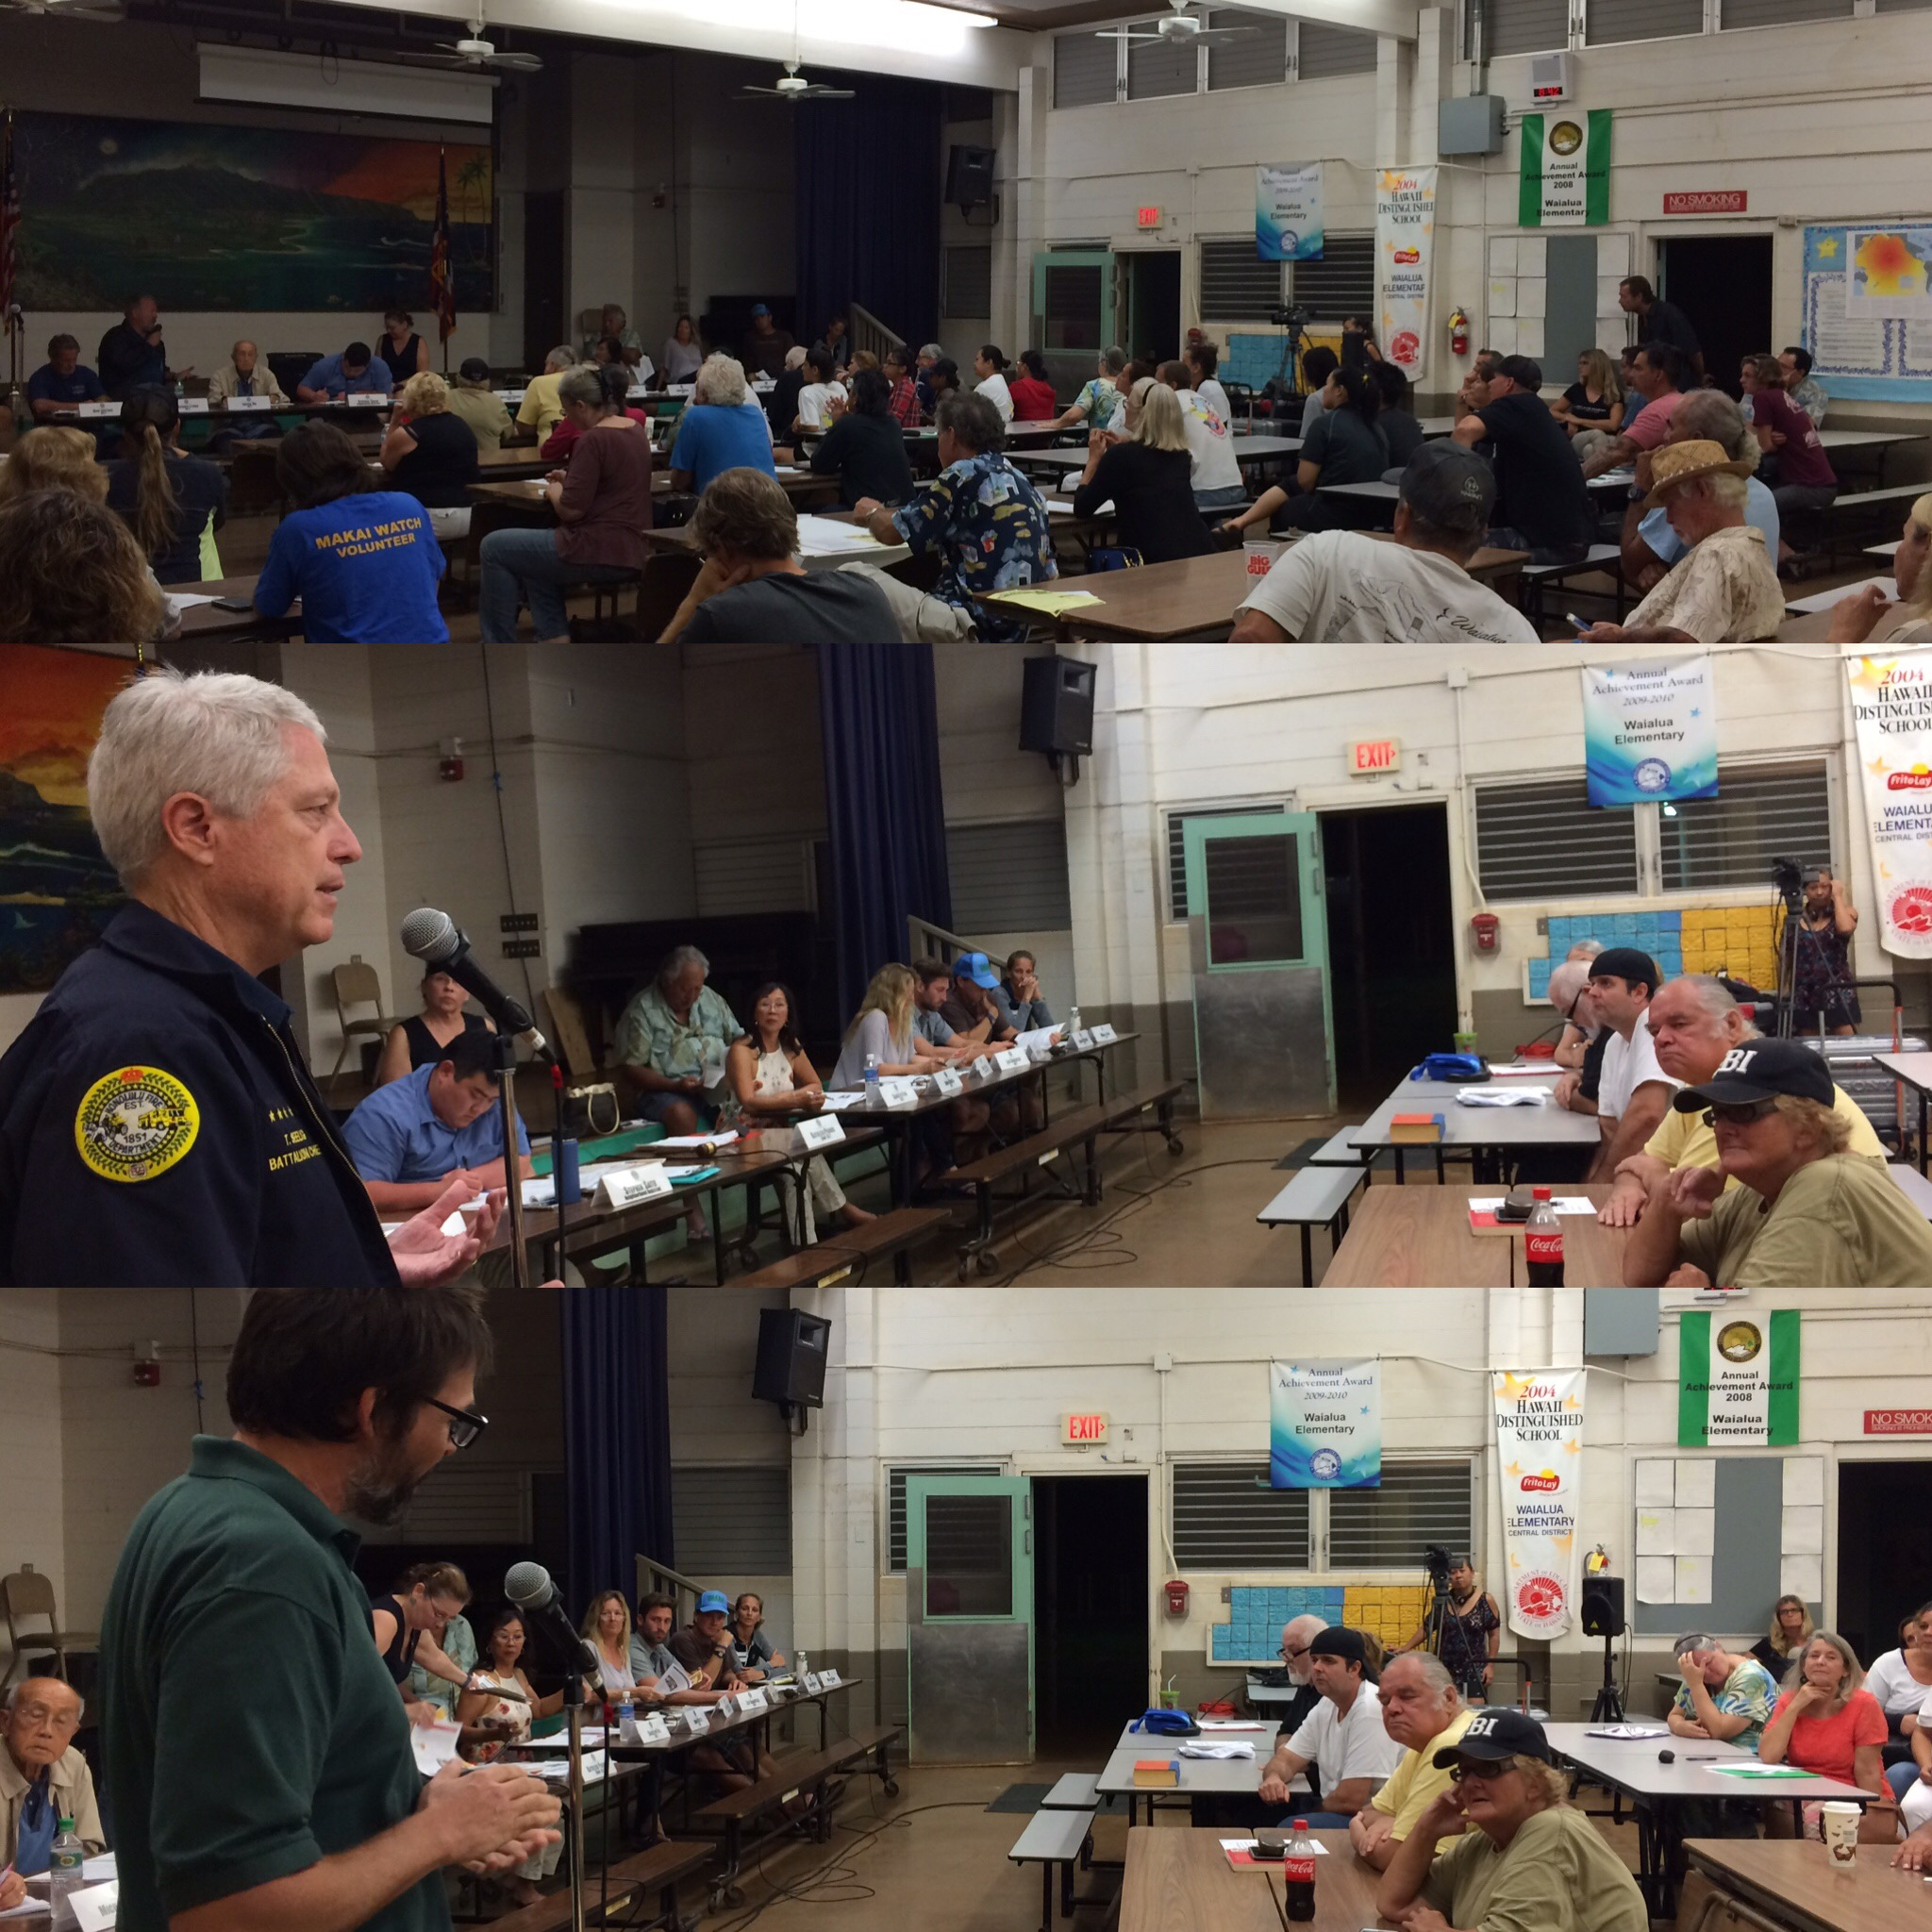 Chief Seelig of Honolulu Fire Department (middle) and Clay Trauernicht of University of Hawaii CTAHR Cooperative Extension (bottom) address a large group of concerned residents about wildfires in the area.